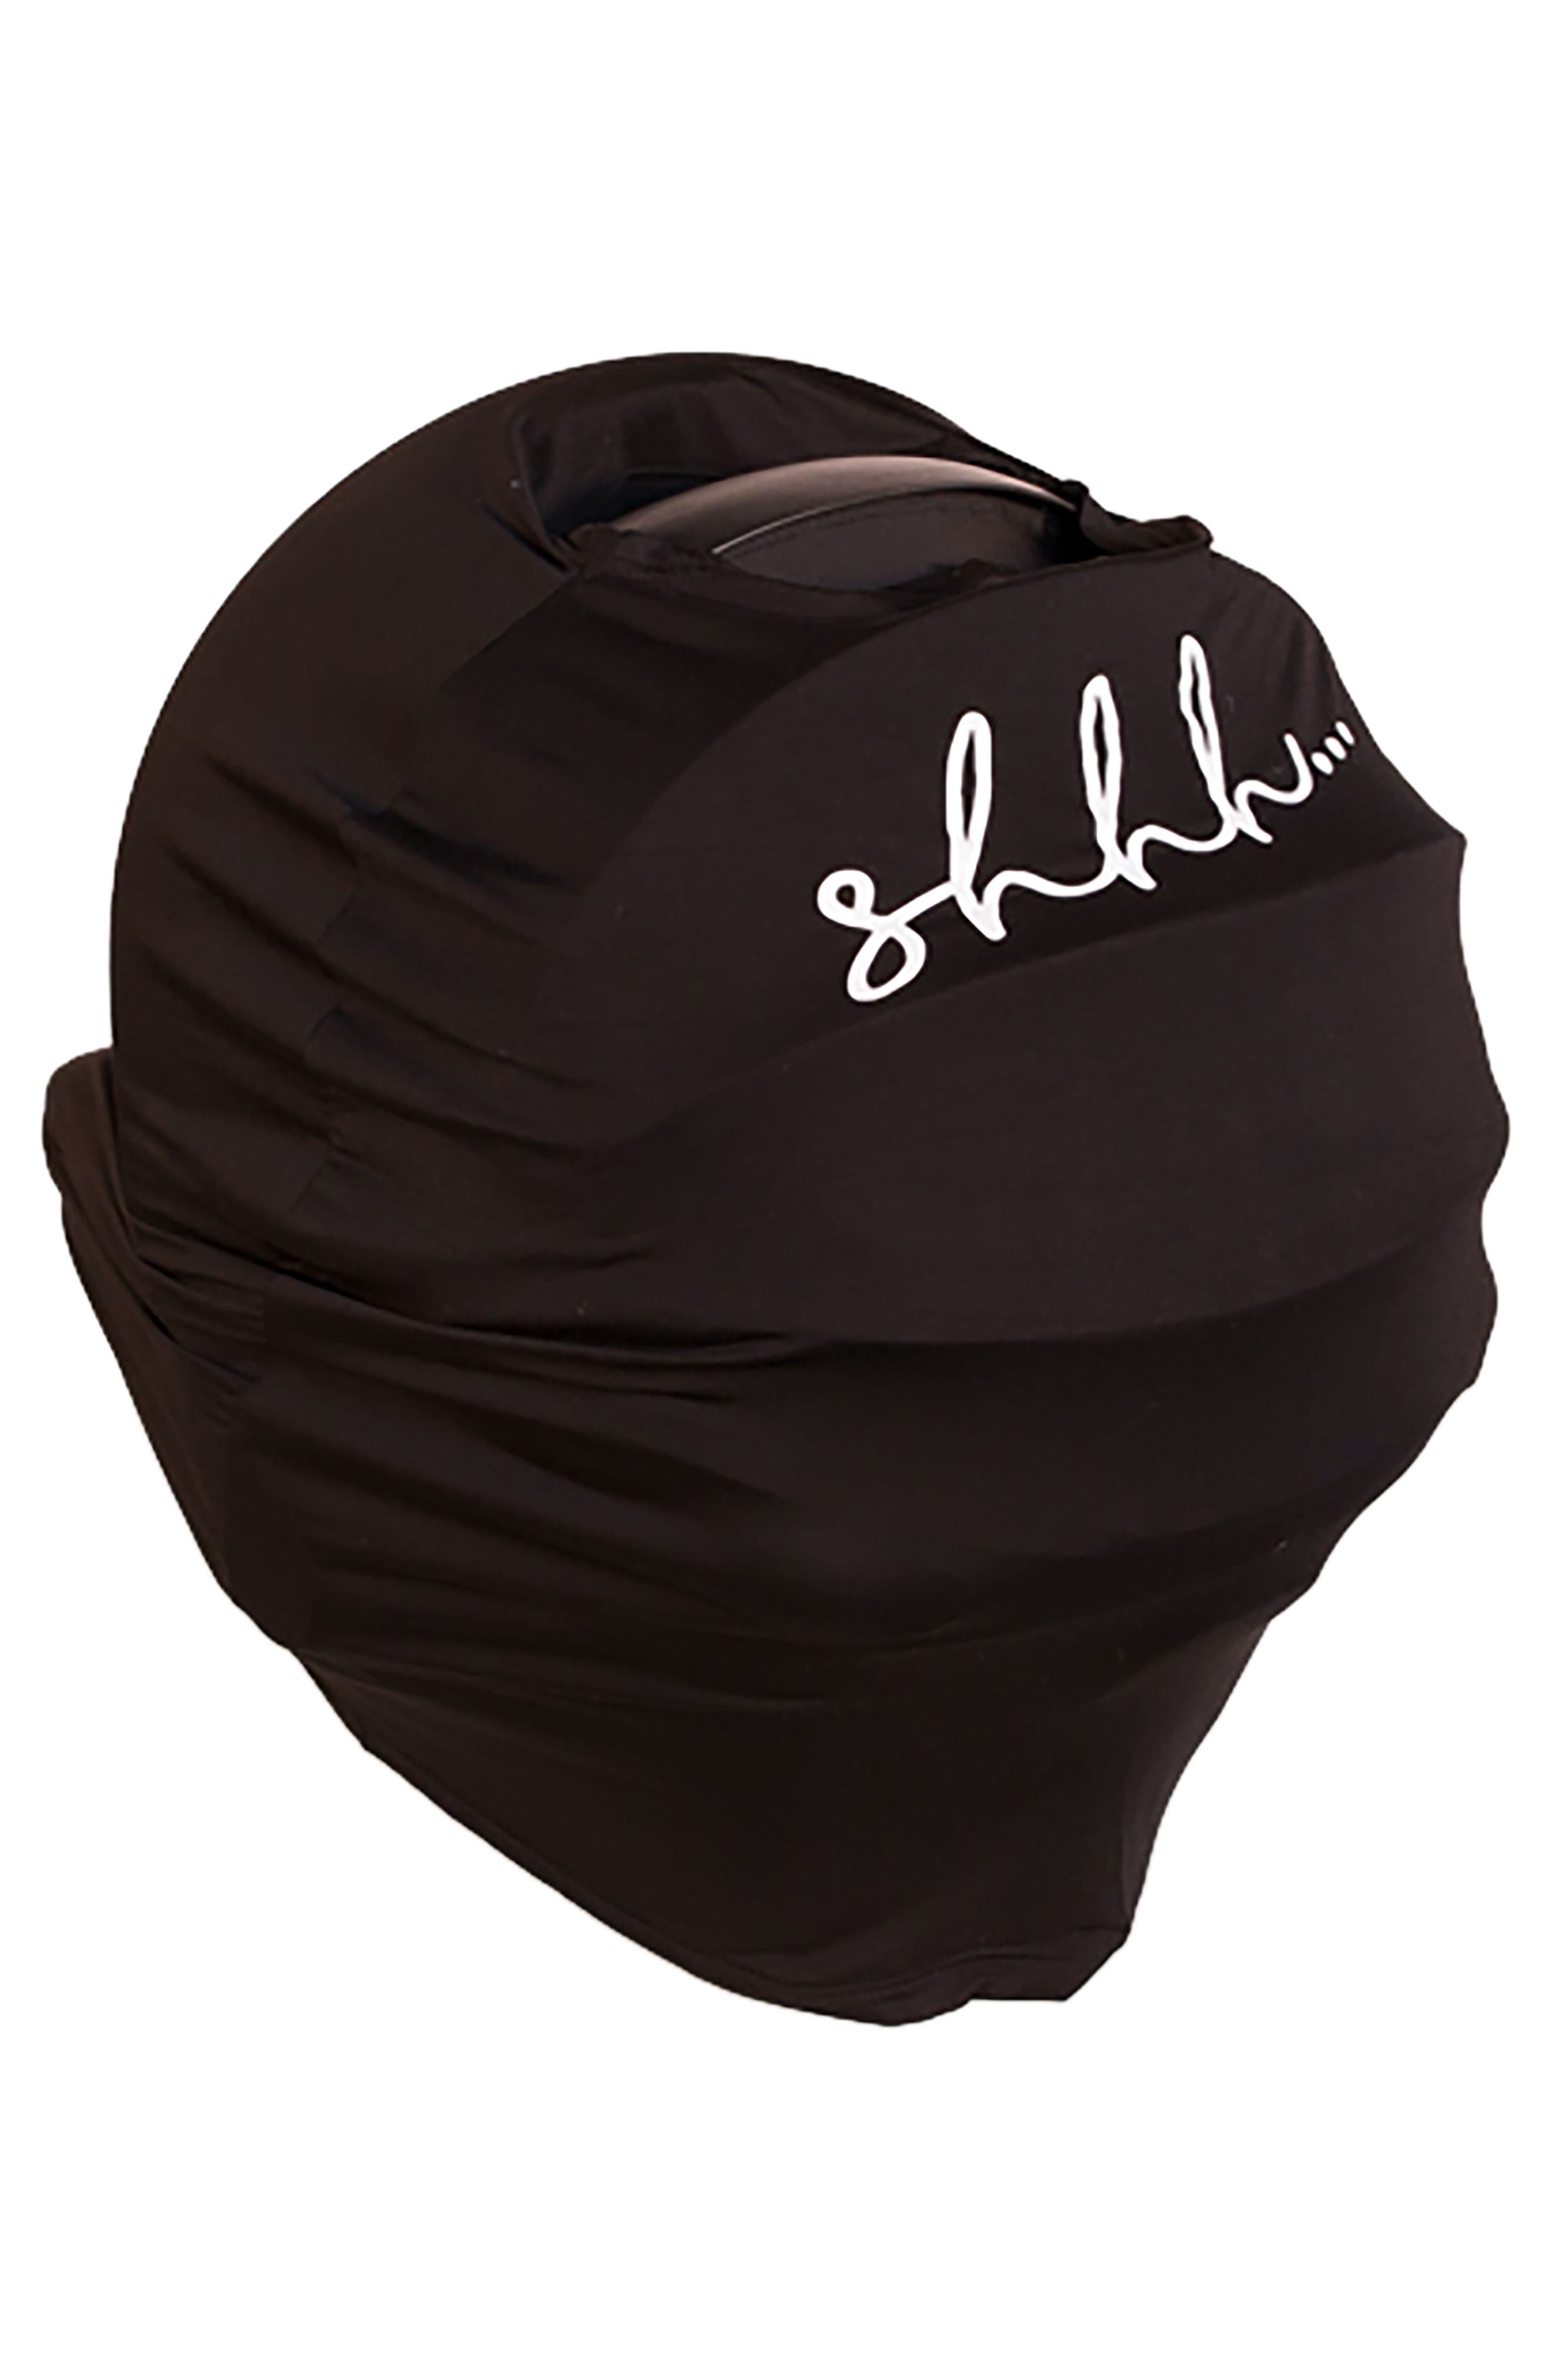 5-in-1 Car Seat Cover,                             Alternate thumbnail 2, color,                             Black Lashes